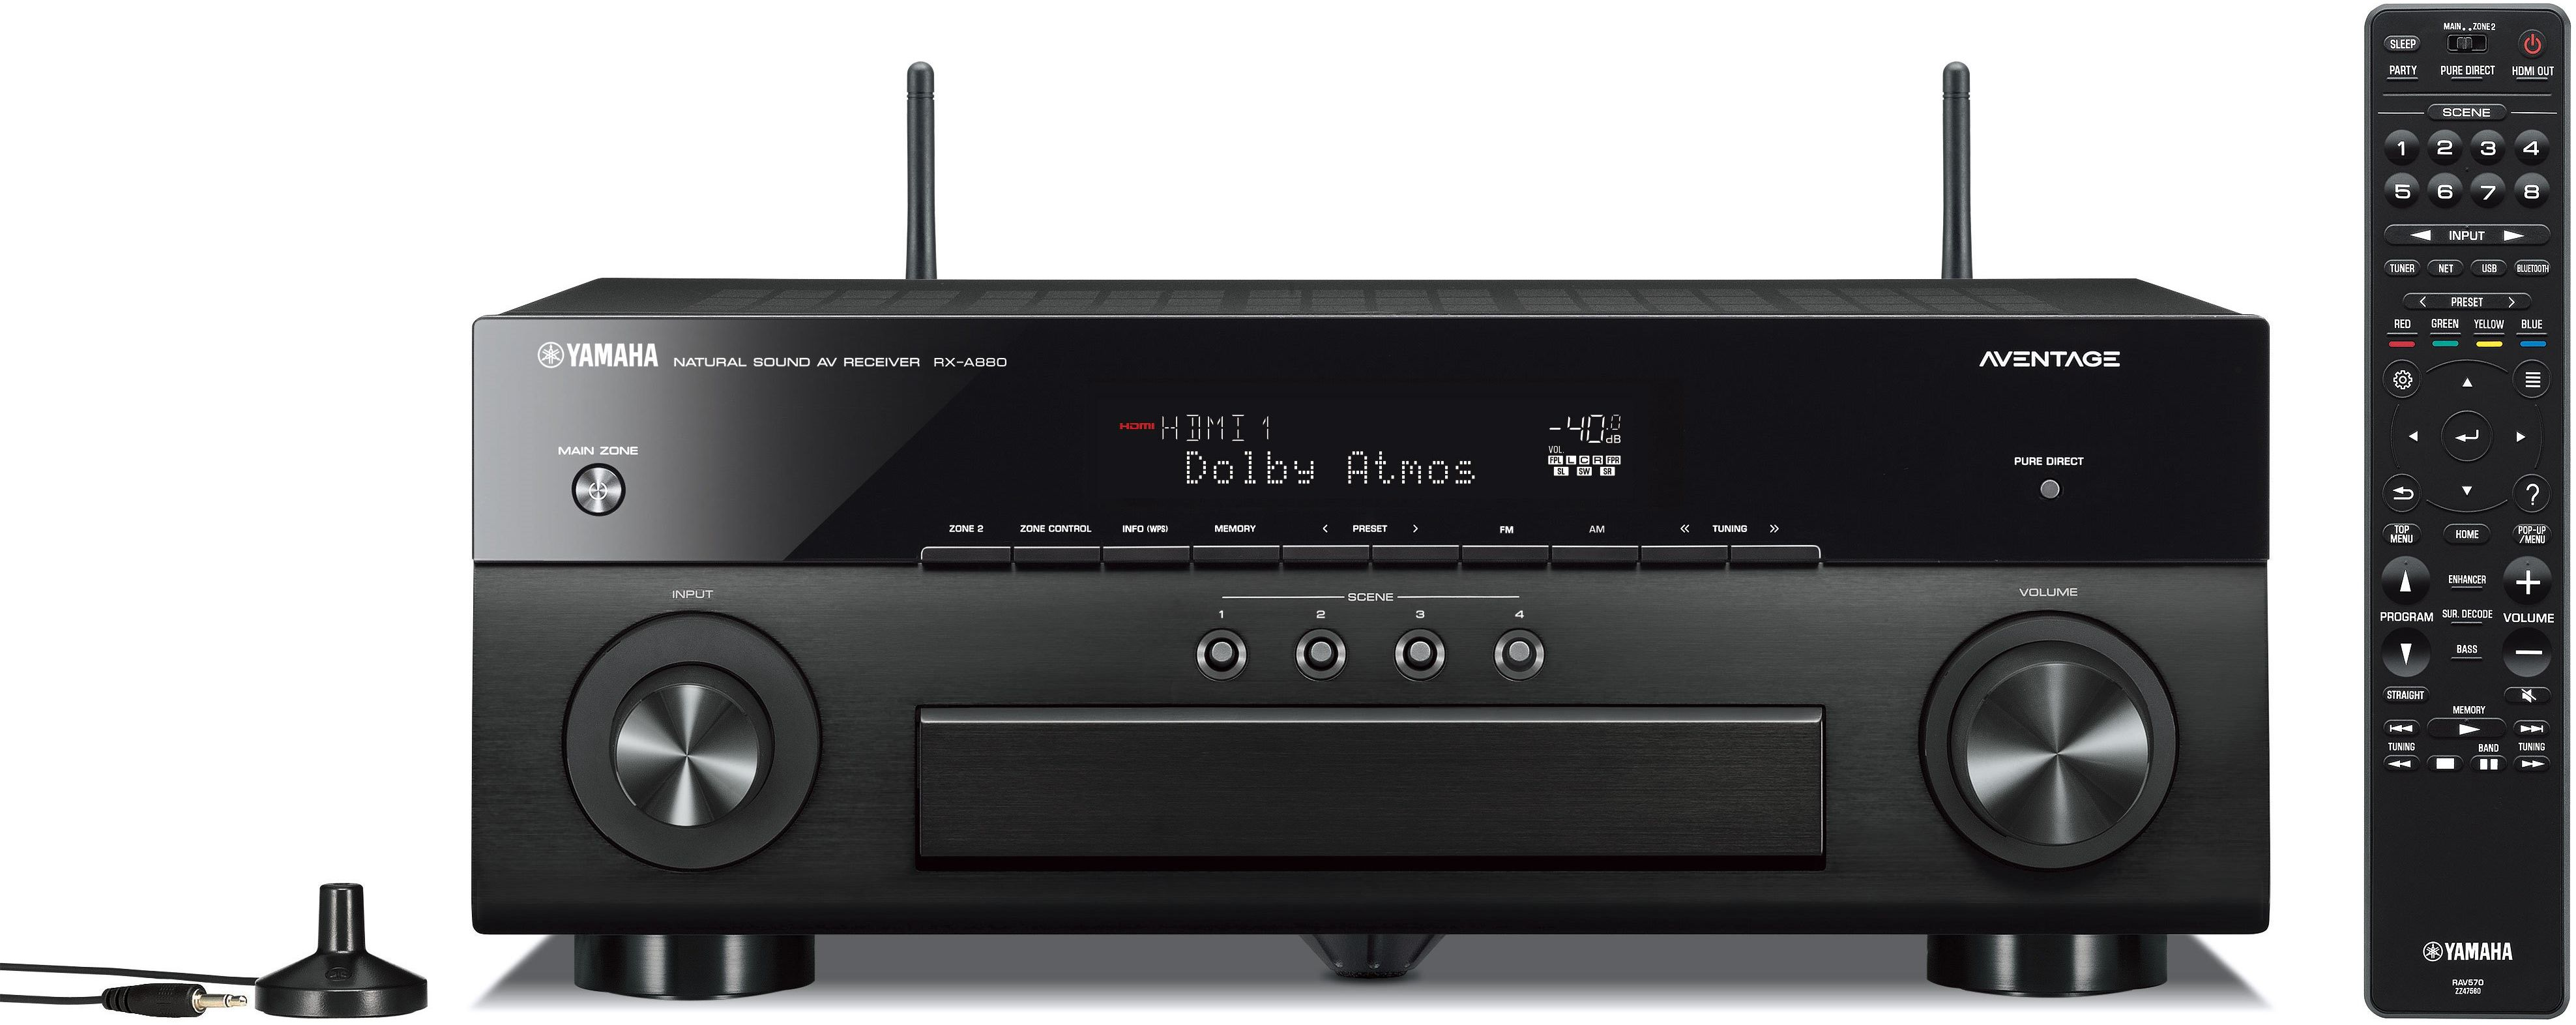 Yamaha Aventage 7 2 Channel AV Receiver-RX-A880BL Home